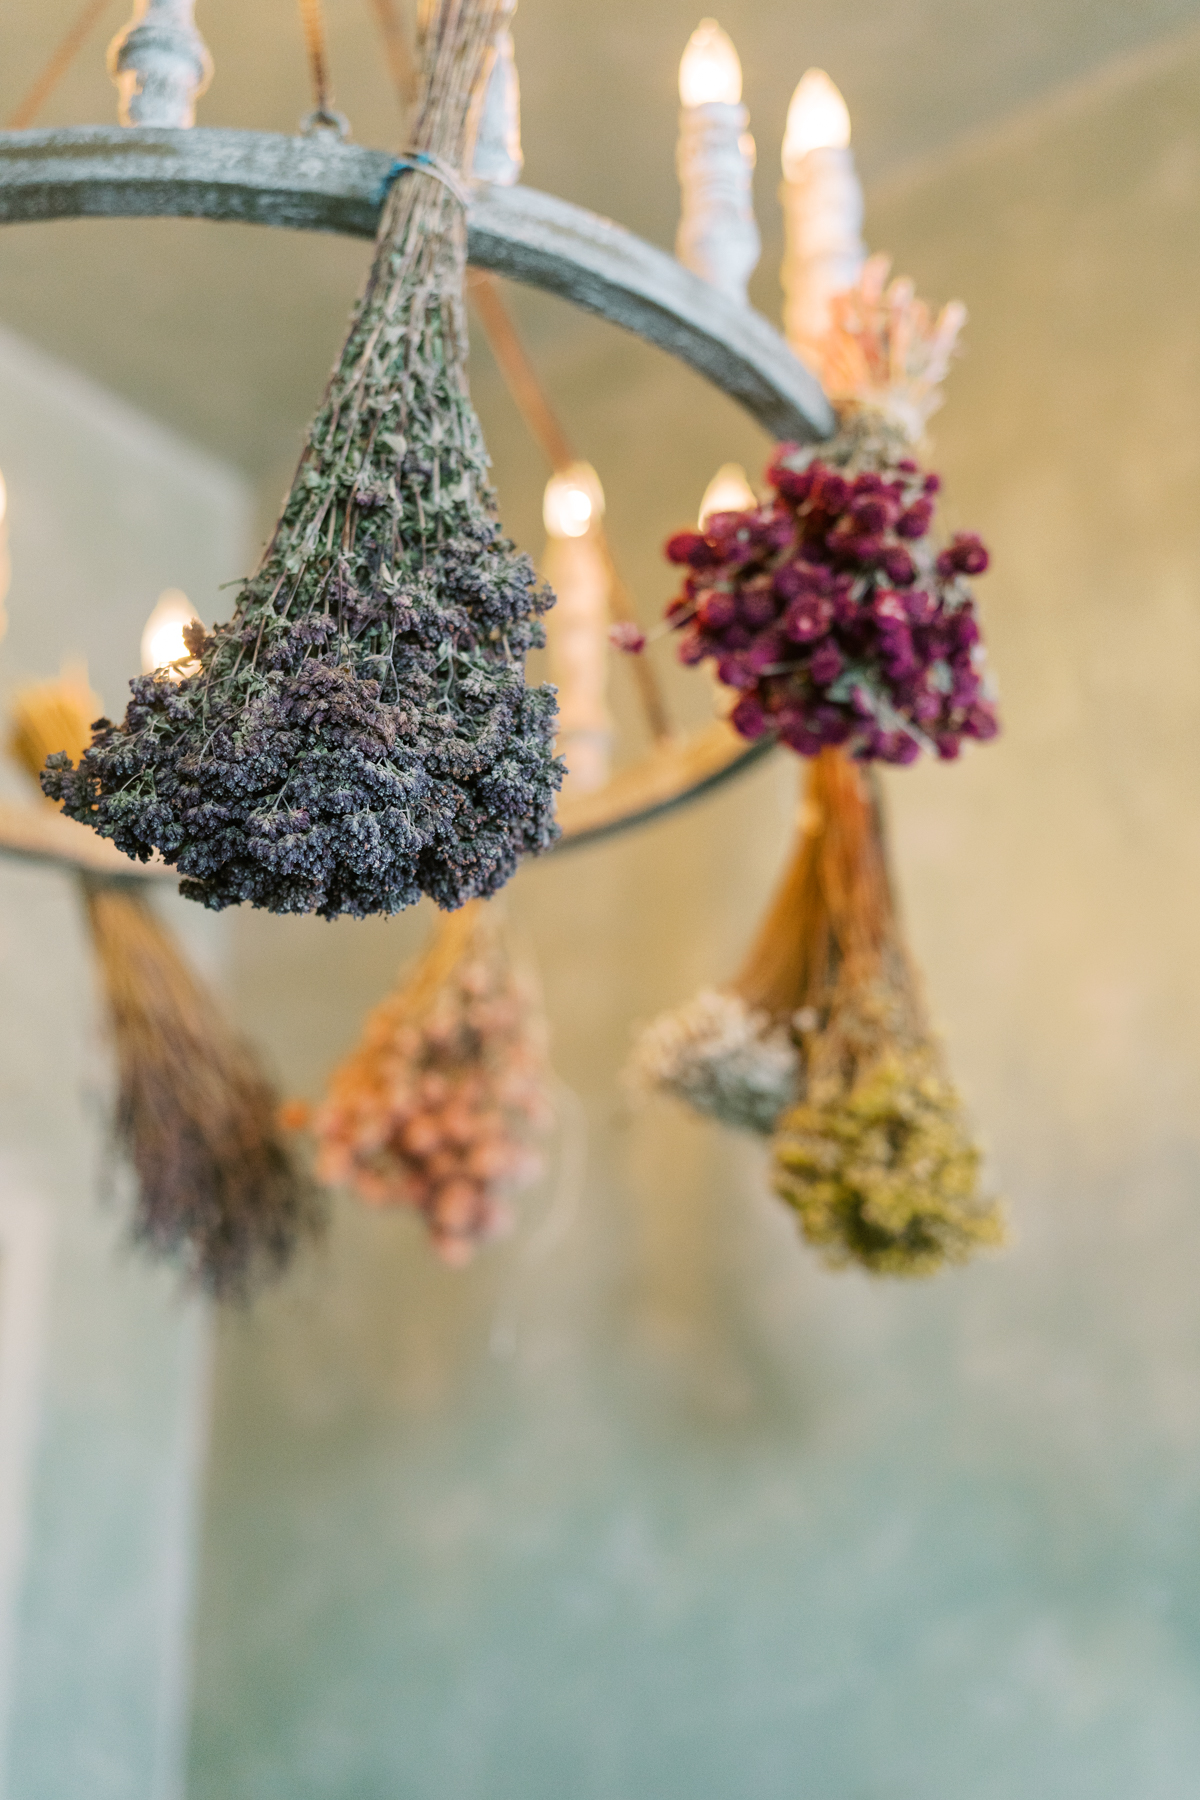 dried hanging flowers